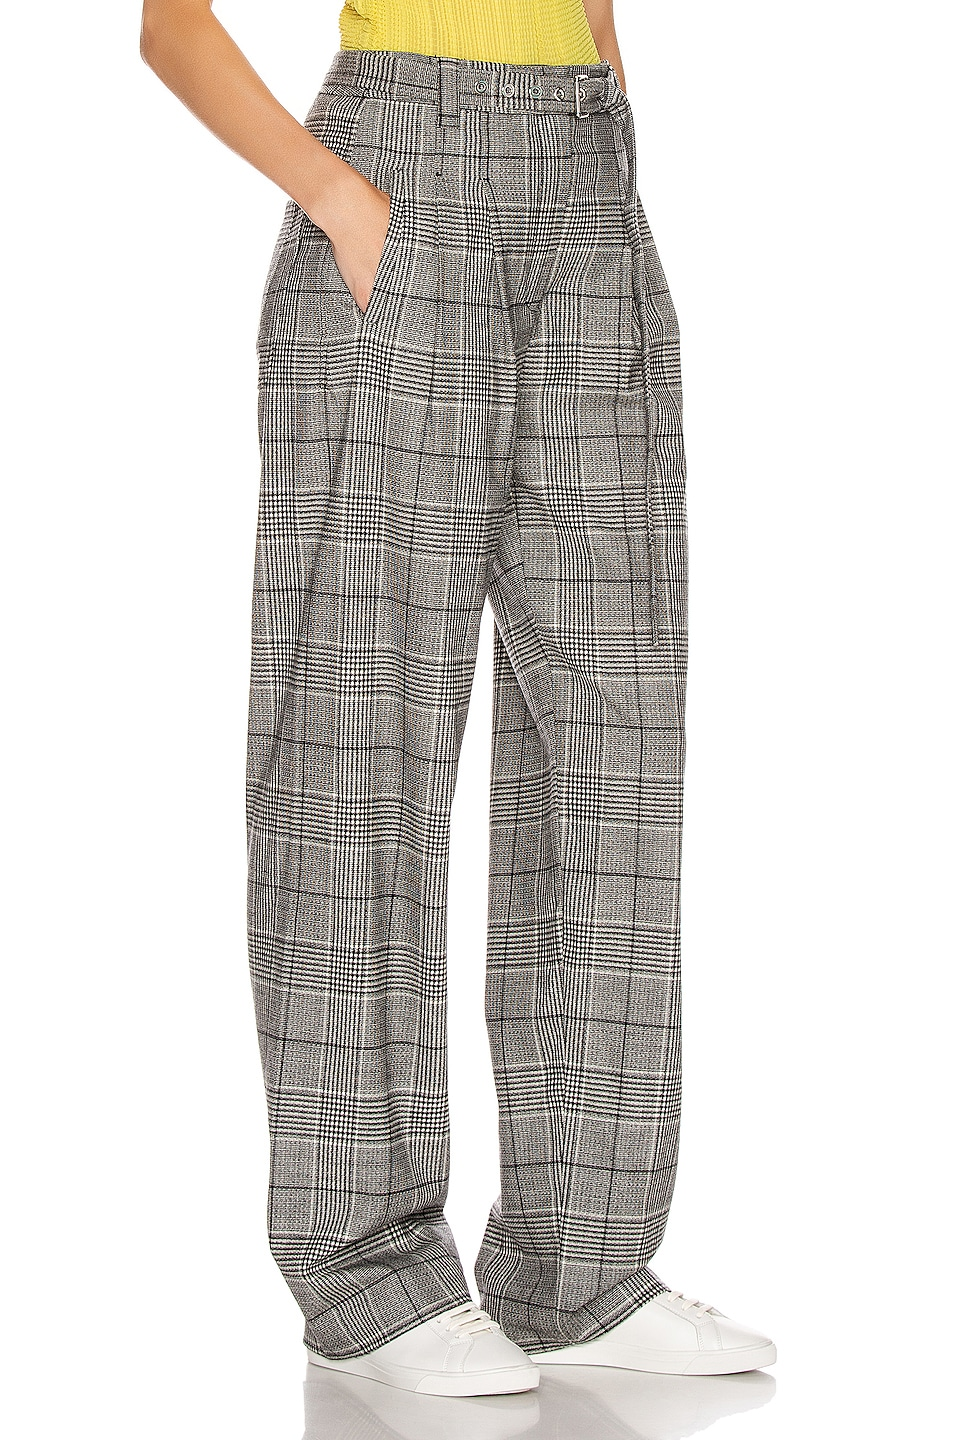 Image 2 of Proenza Schouler Plaid Exaggerated Plaid Pant in Black & White